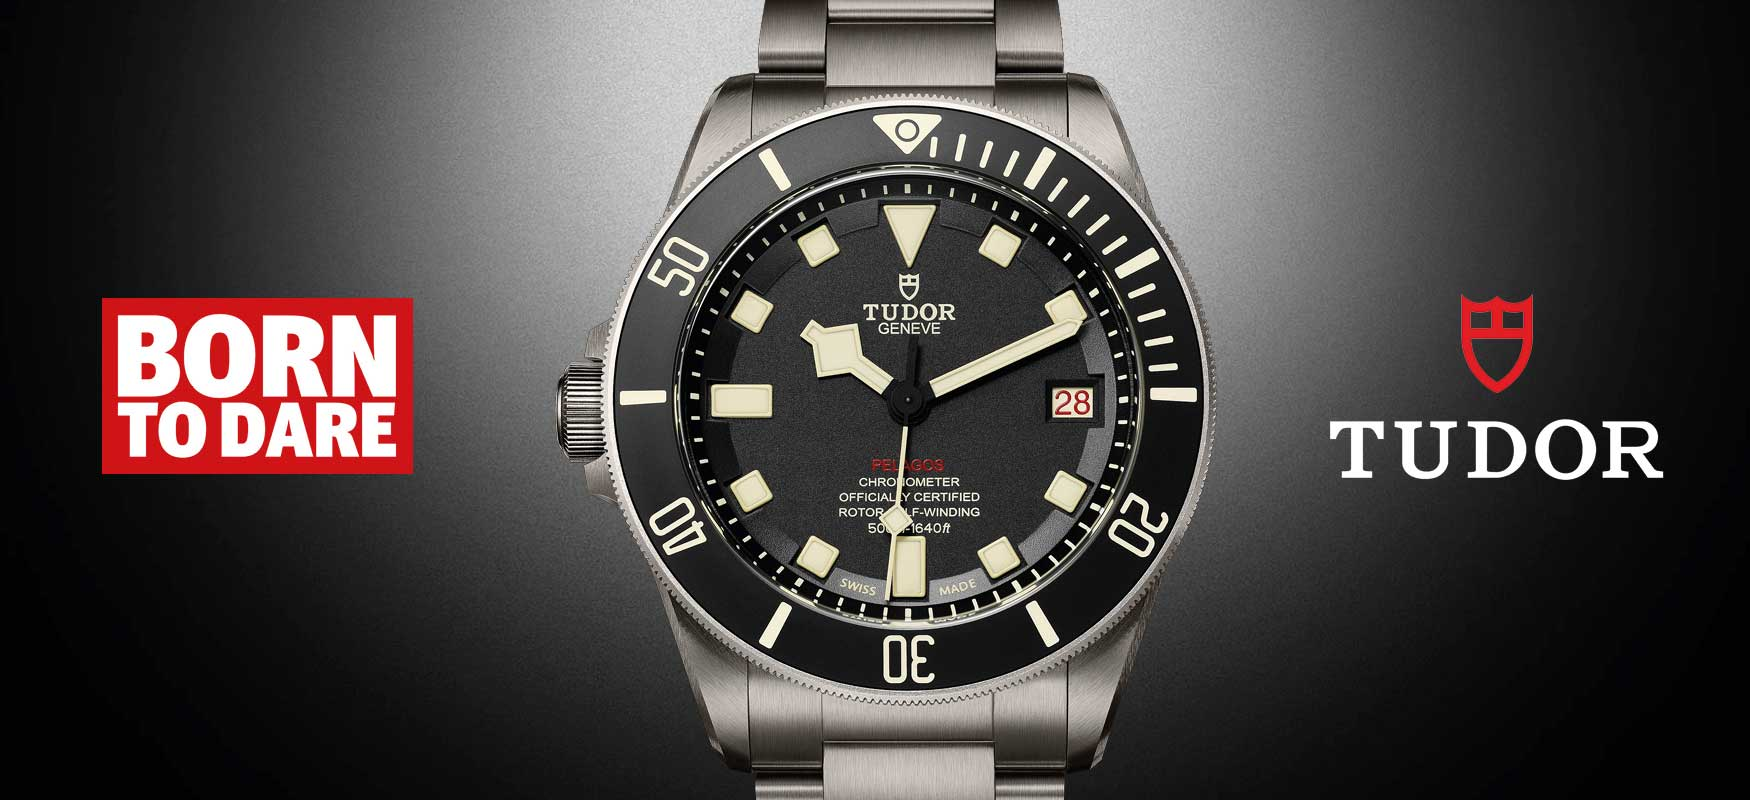 Tudor Watches Stockist Nuneaton